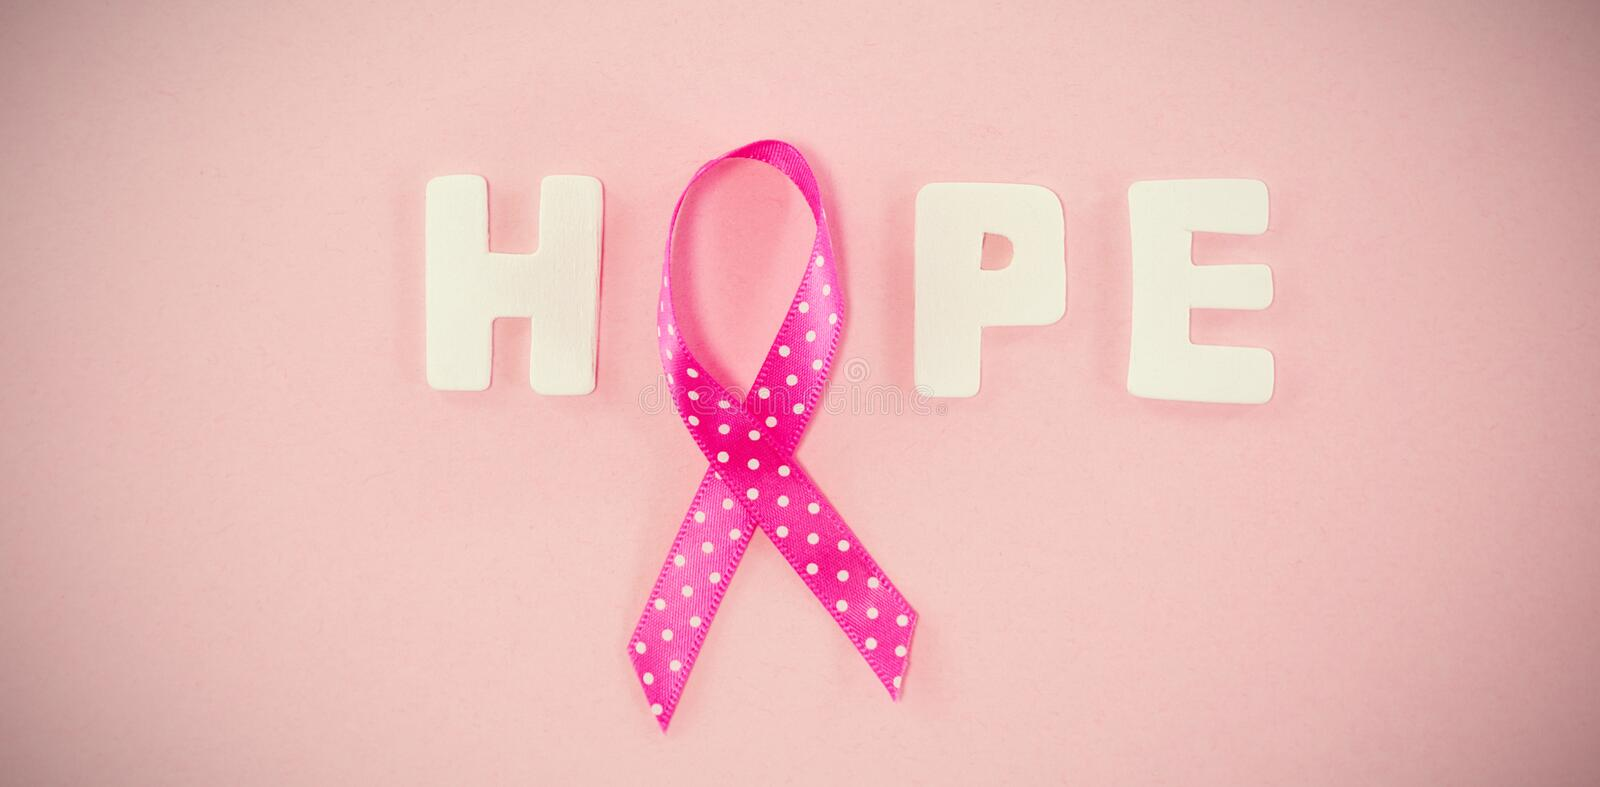 Overhead view of spotted Breast Cancer Awareness ribbon with HOPE text stock image